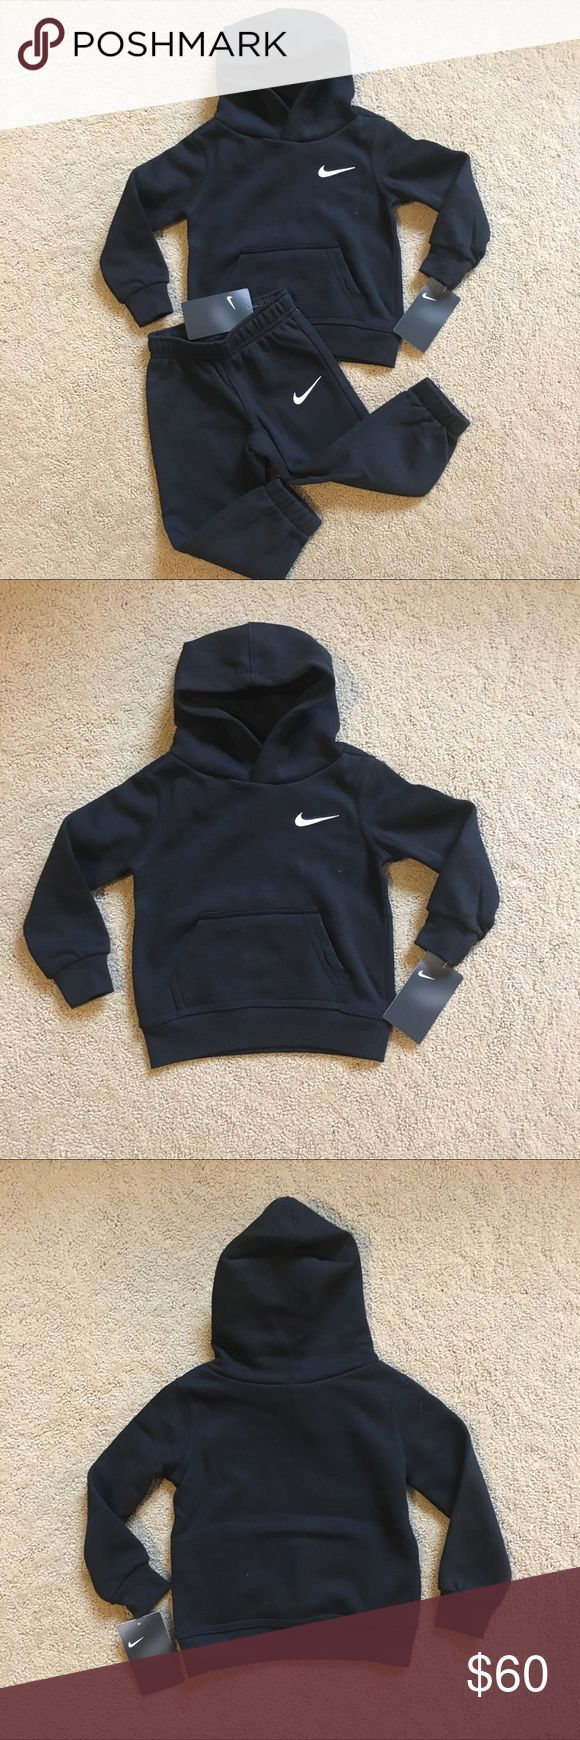 Nike Sweatsuit Set Brand new with tags!! Nike Toddler Boys ...